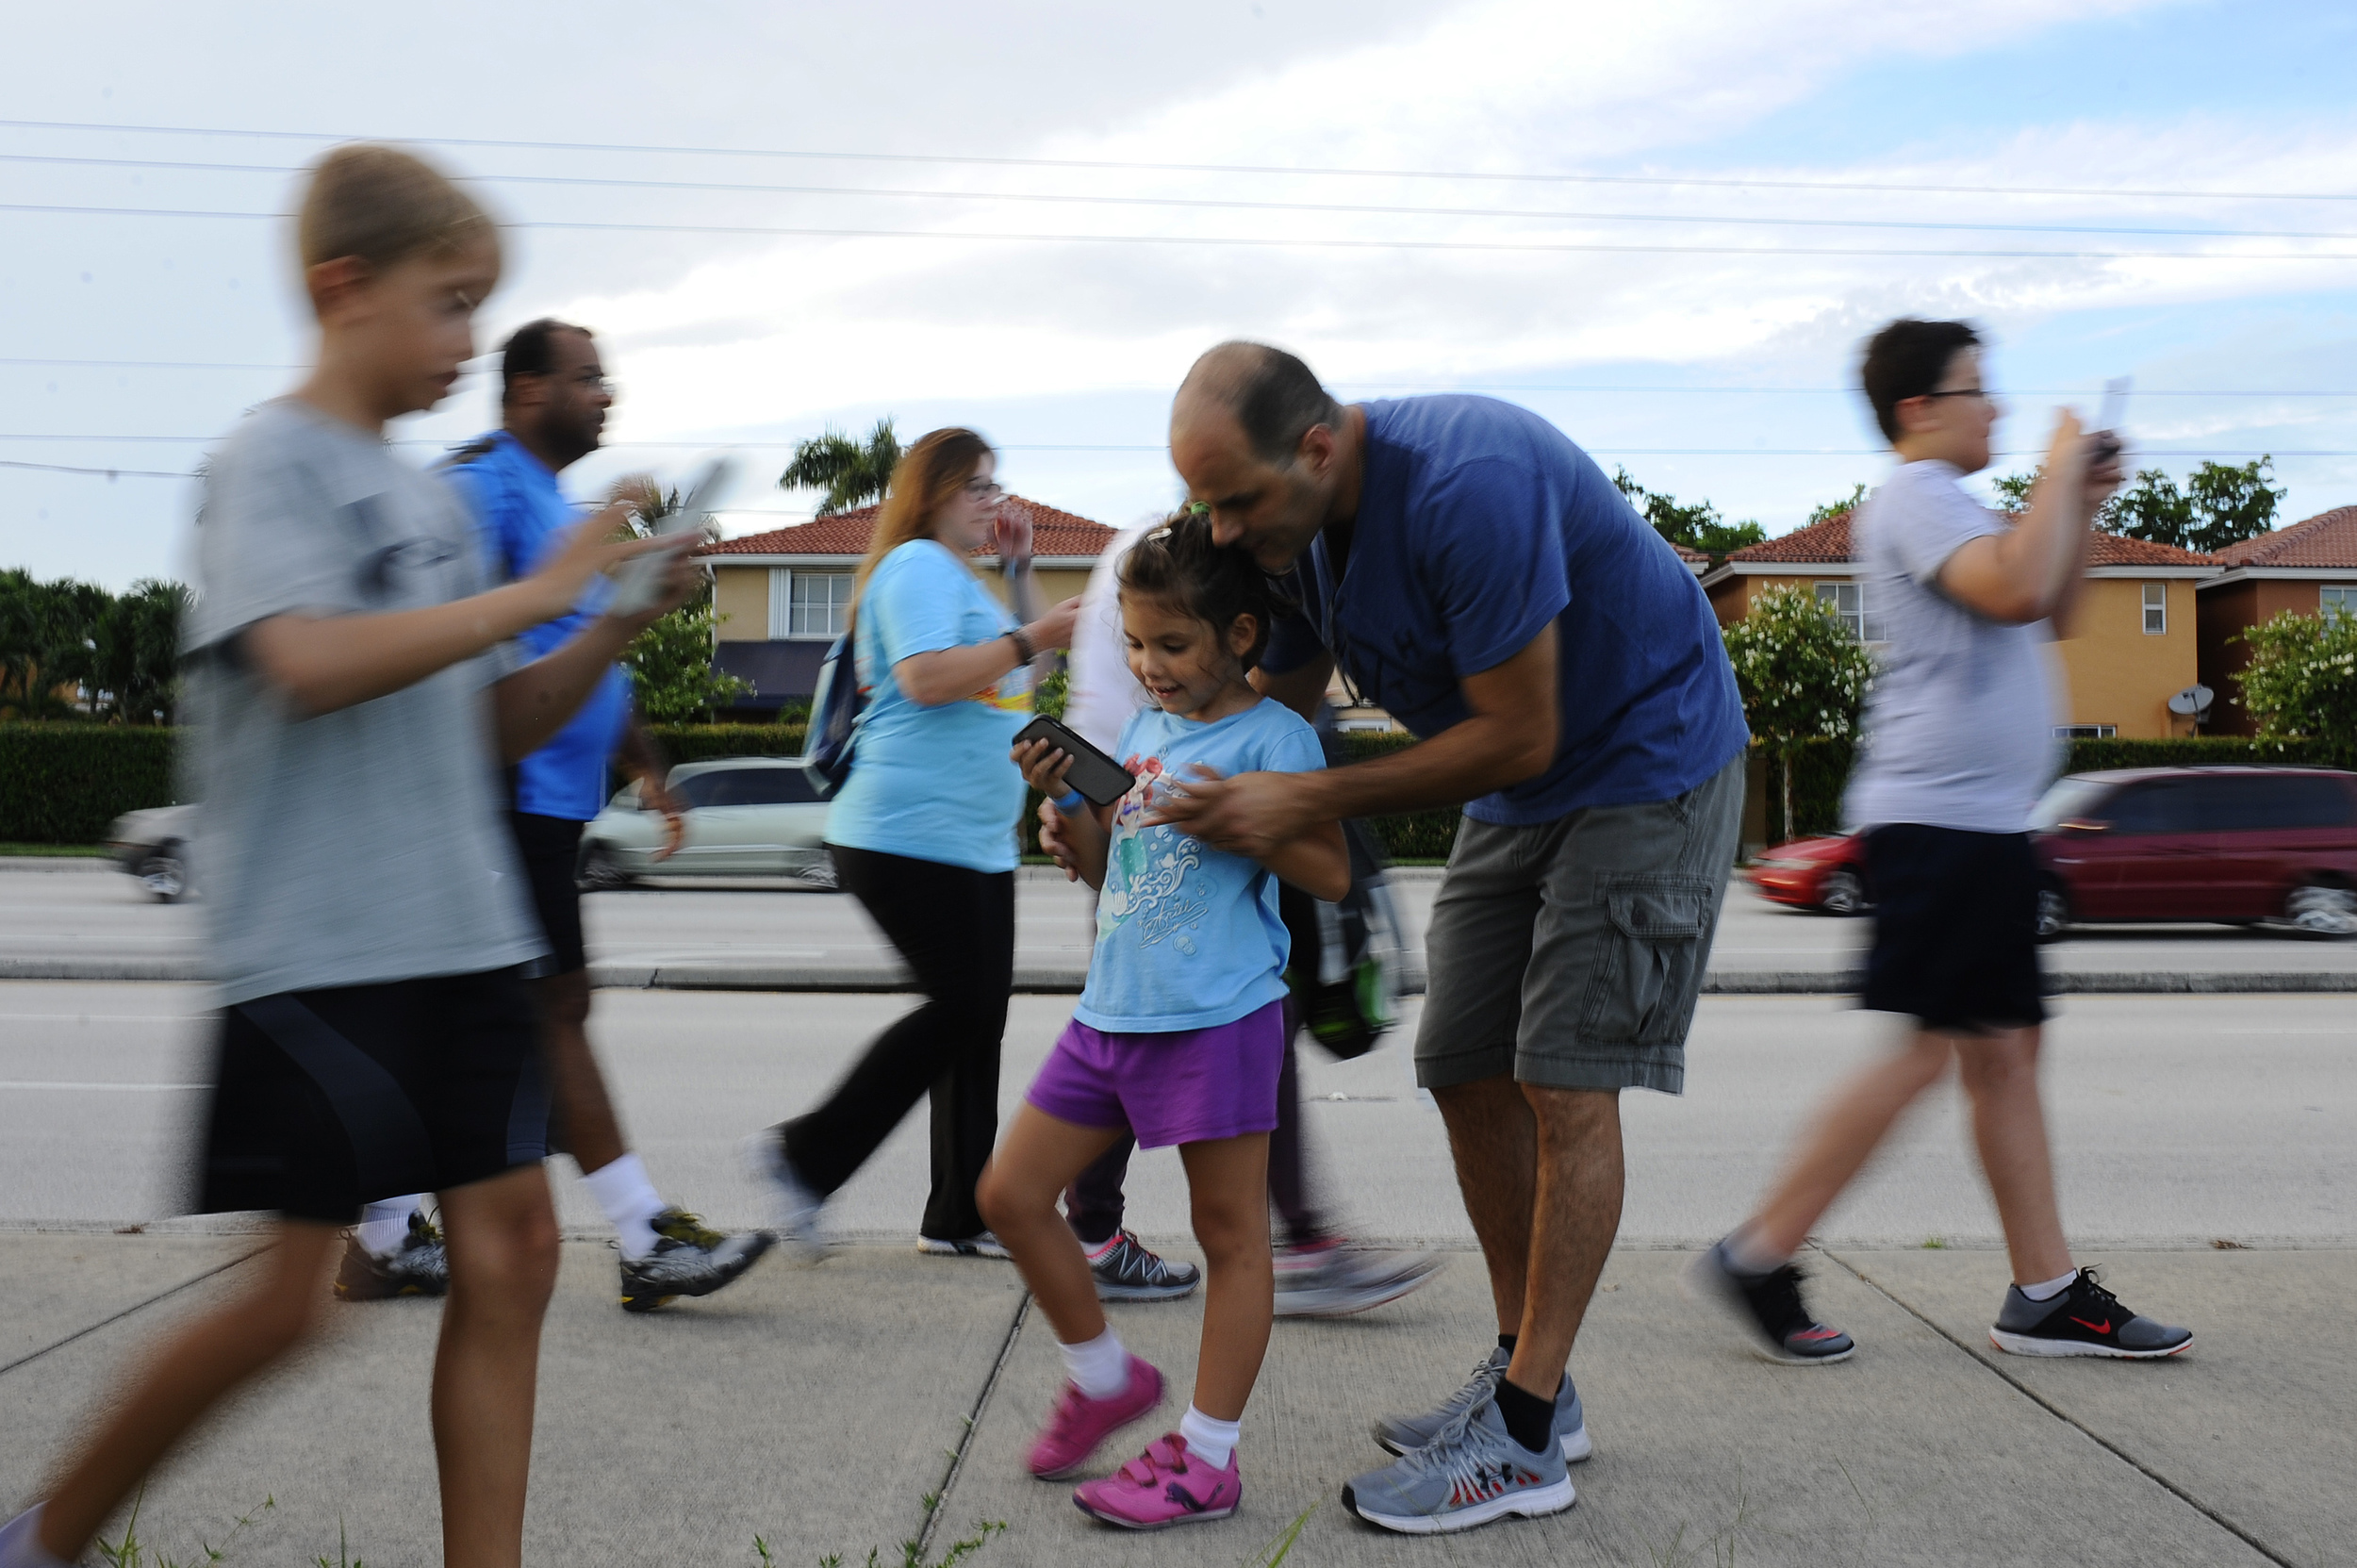 Andrea Olviera, 5, receives help from her father Alex Olviera with catching a Pokemon throughout the course during the weekly meeting of the West Kendall Baptist Hospital Run Club held at the West Kendall Baptist Hospital on July 21, 2016. The run club have introduced the popular app Pokemon Go into their runs in the hopes of getting more people engaged with others as well as getting in shape.